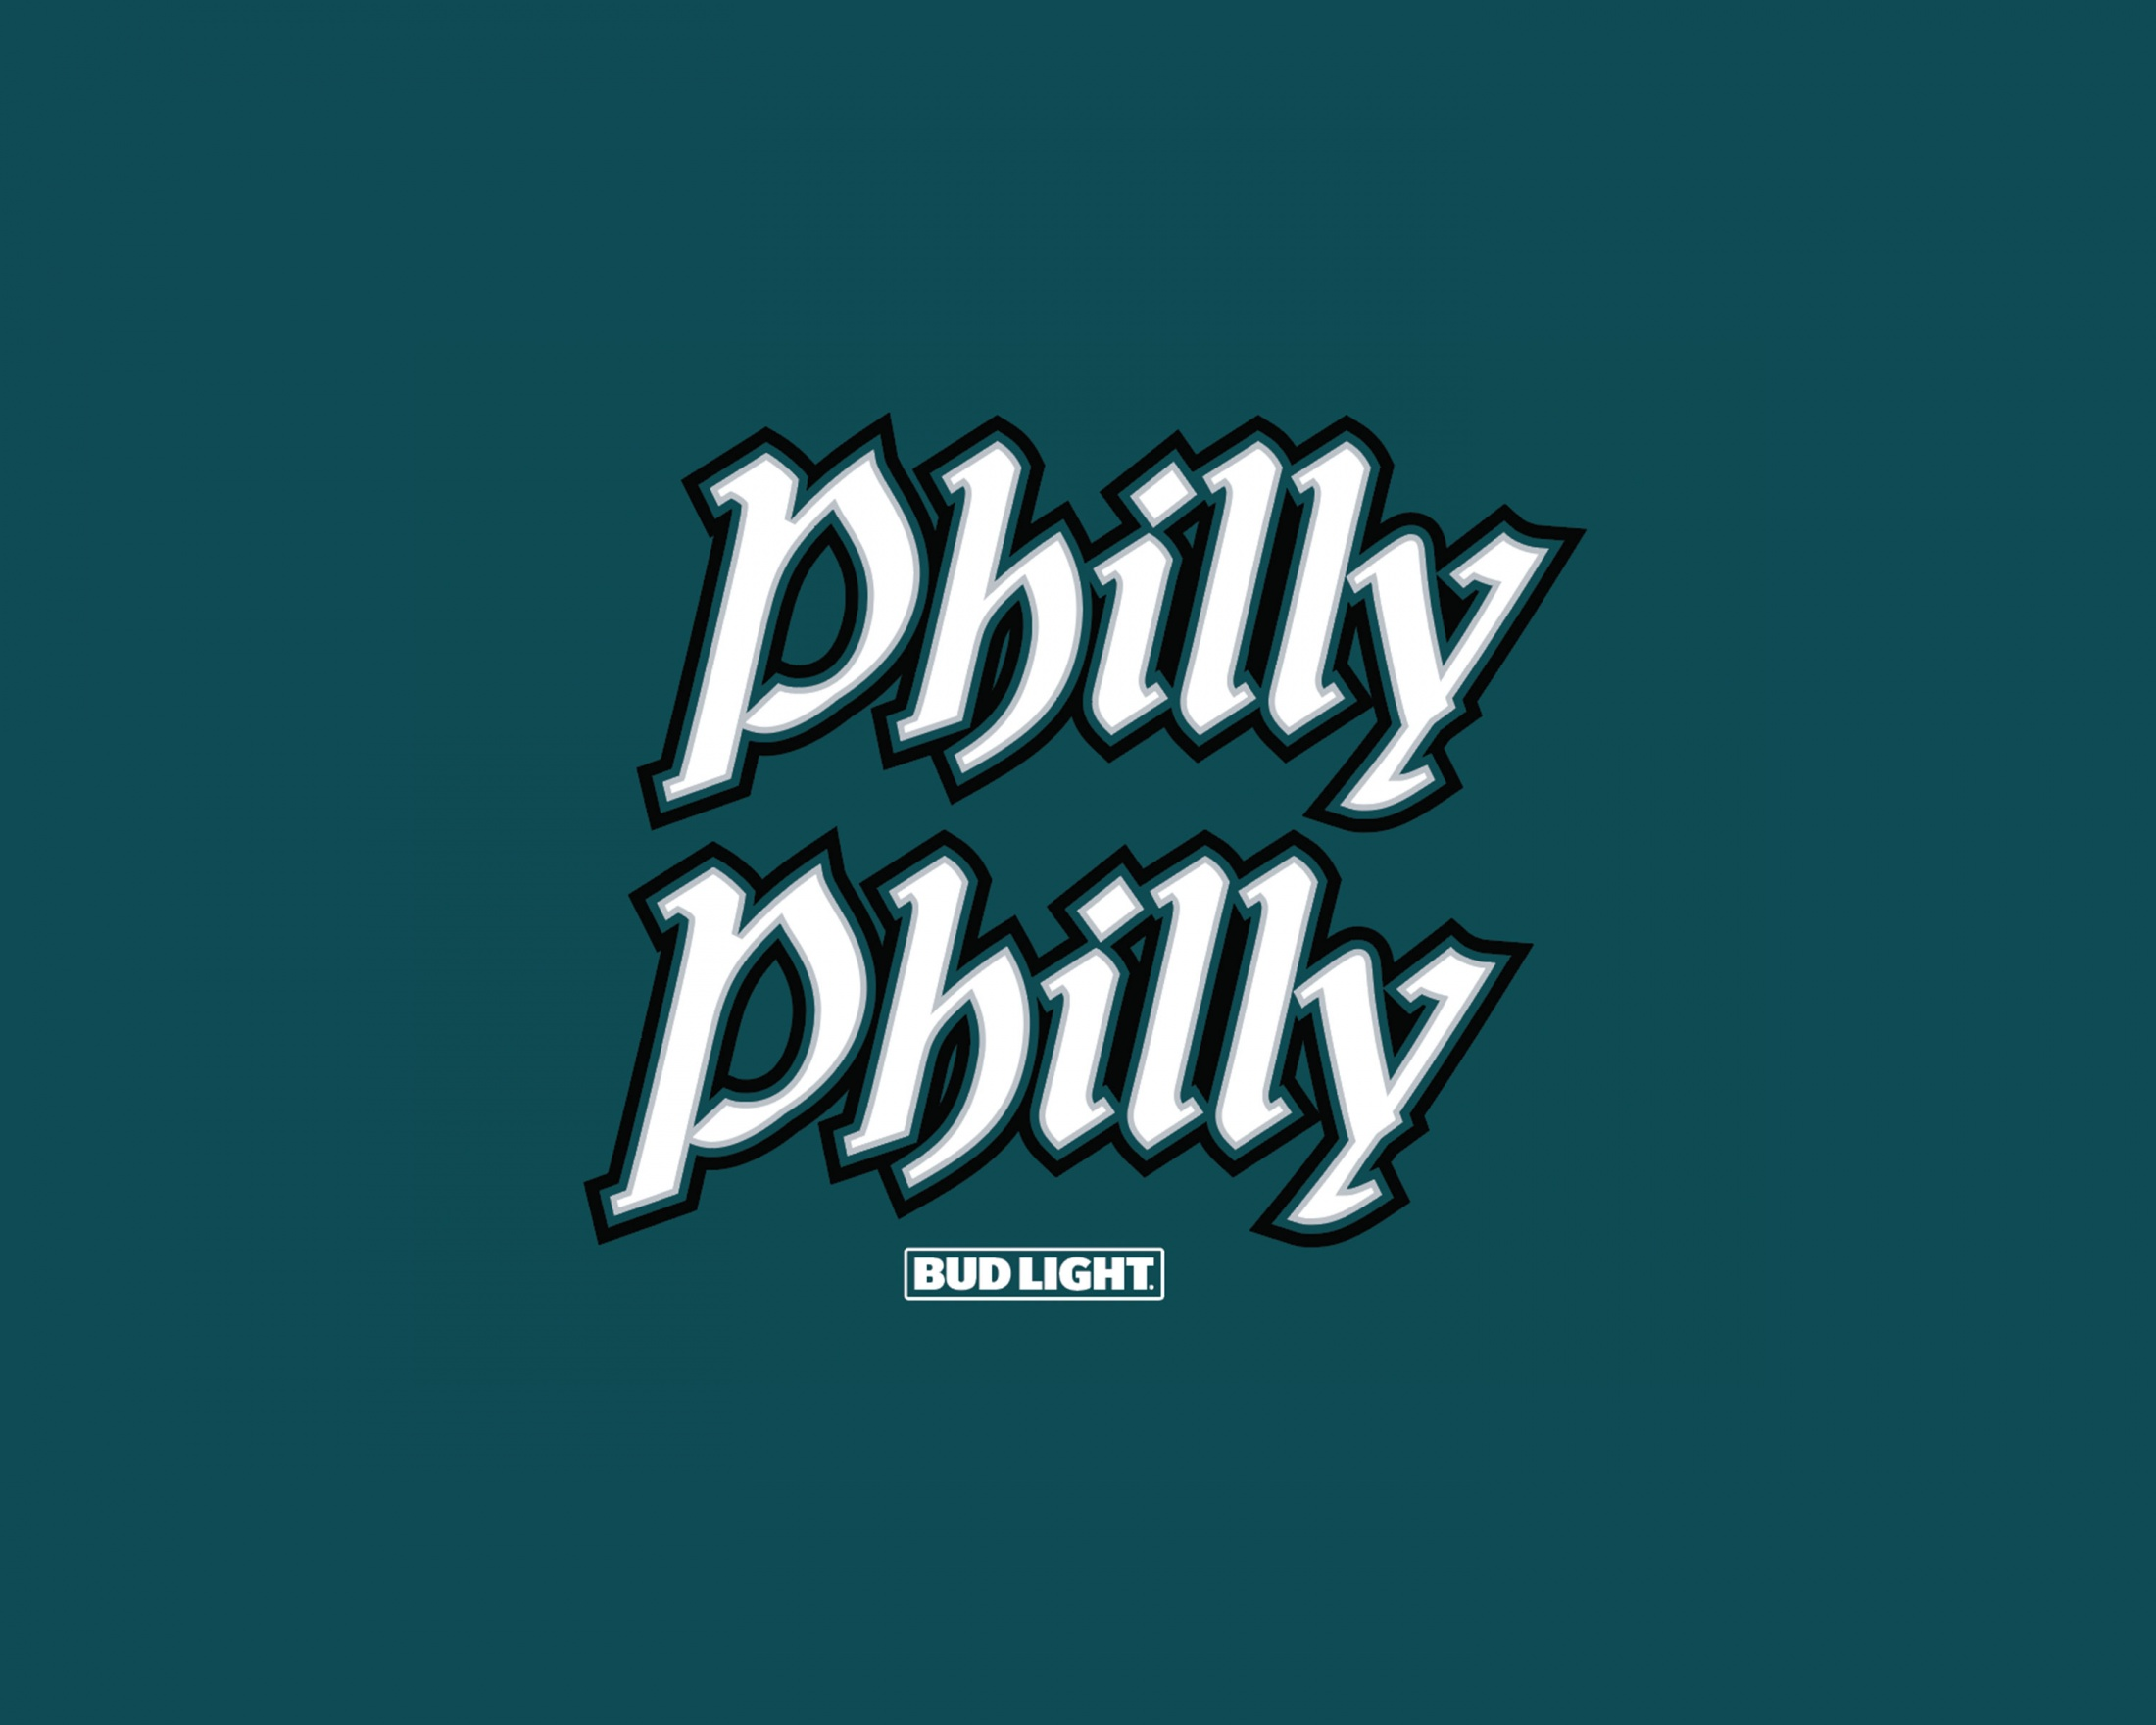 Image Media for Philly Philly